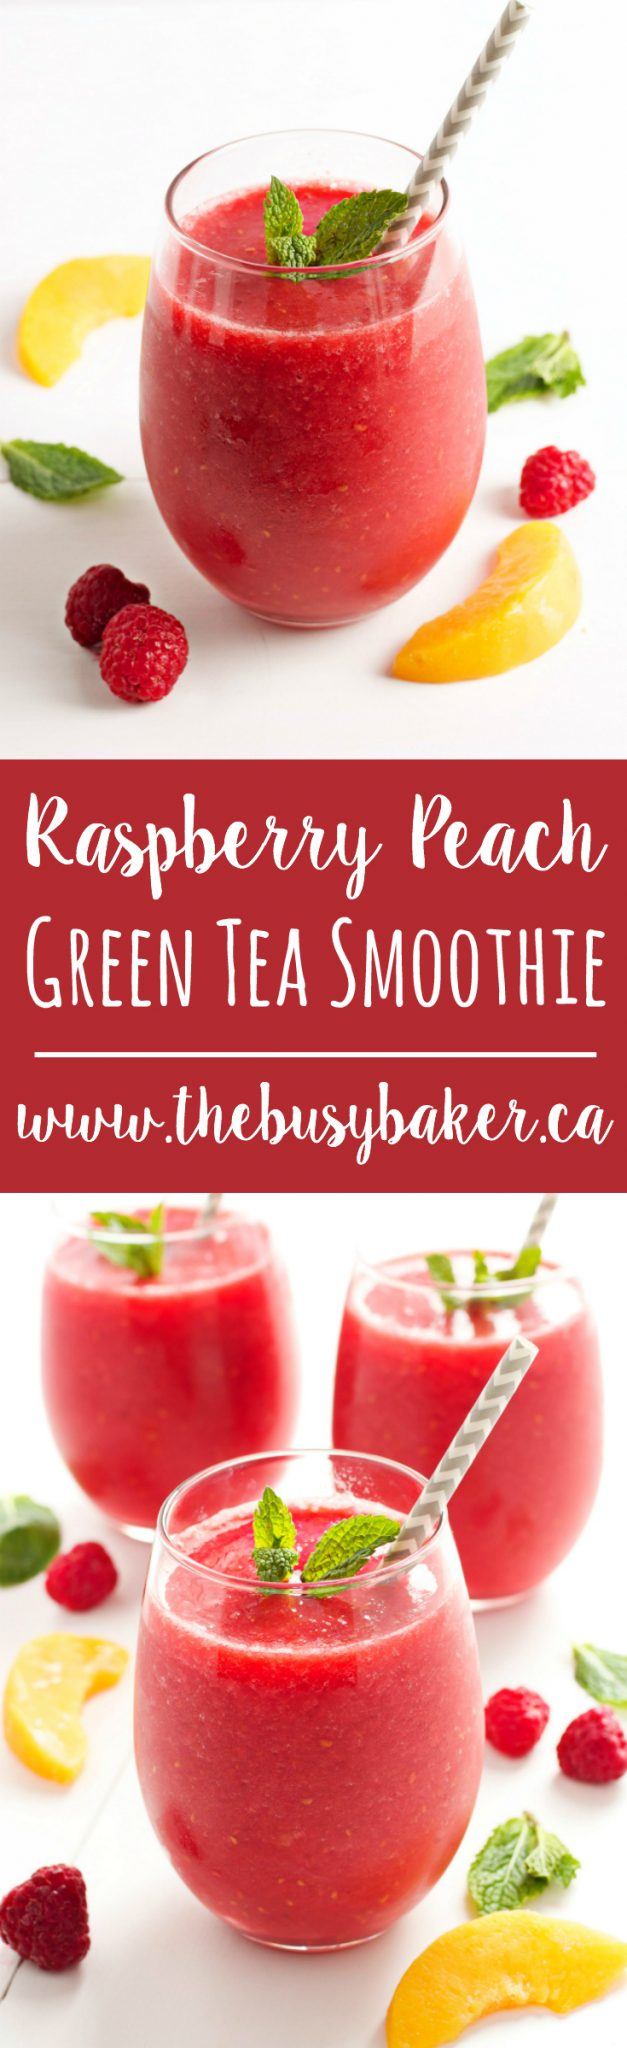 This Raspberry Peach Green Tea Smoothie a refreshing low-calorie treat that's naturally sweetened only with fruit, with a delicious hint of iced green tea! Recipe from thebusybaker.ca! via @busybakerblog